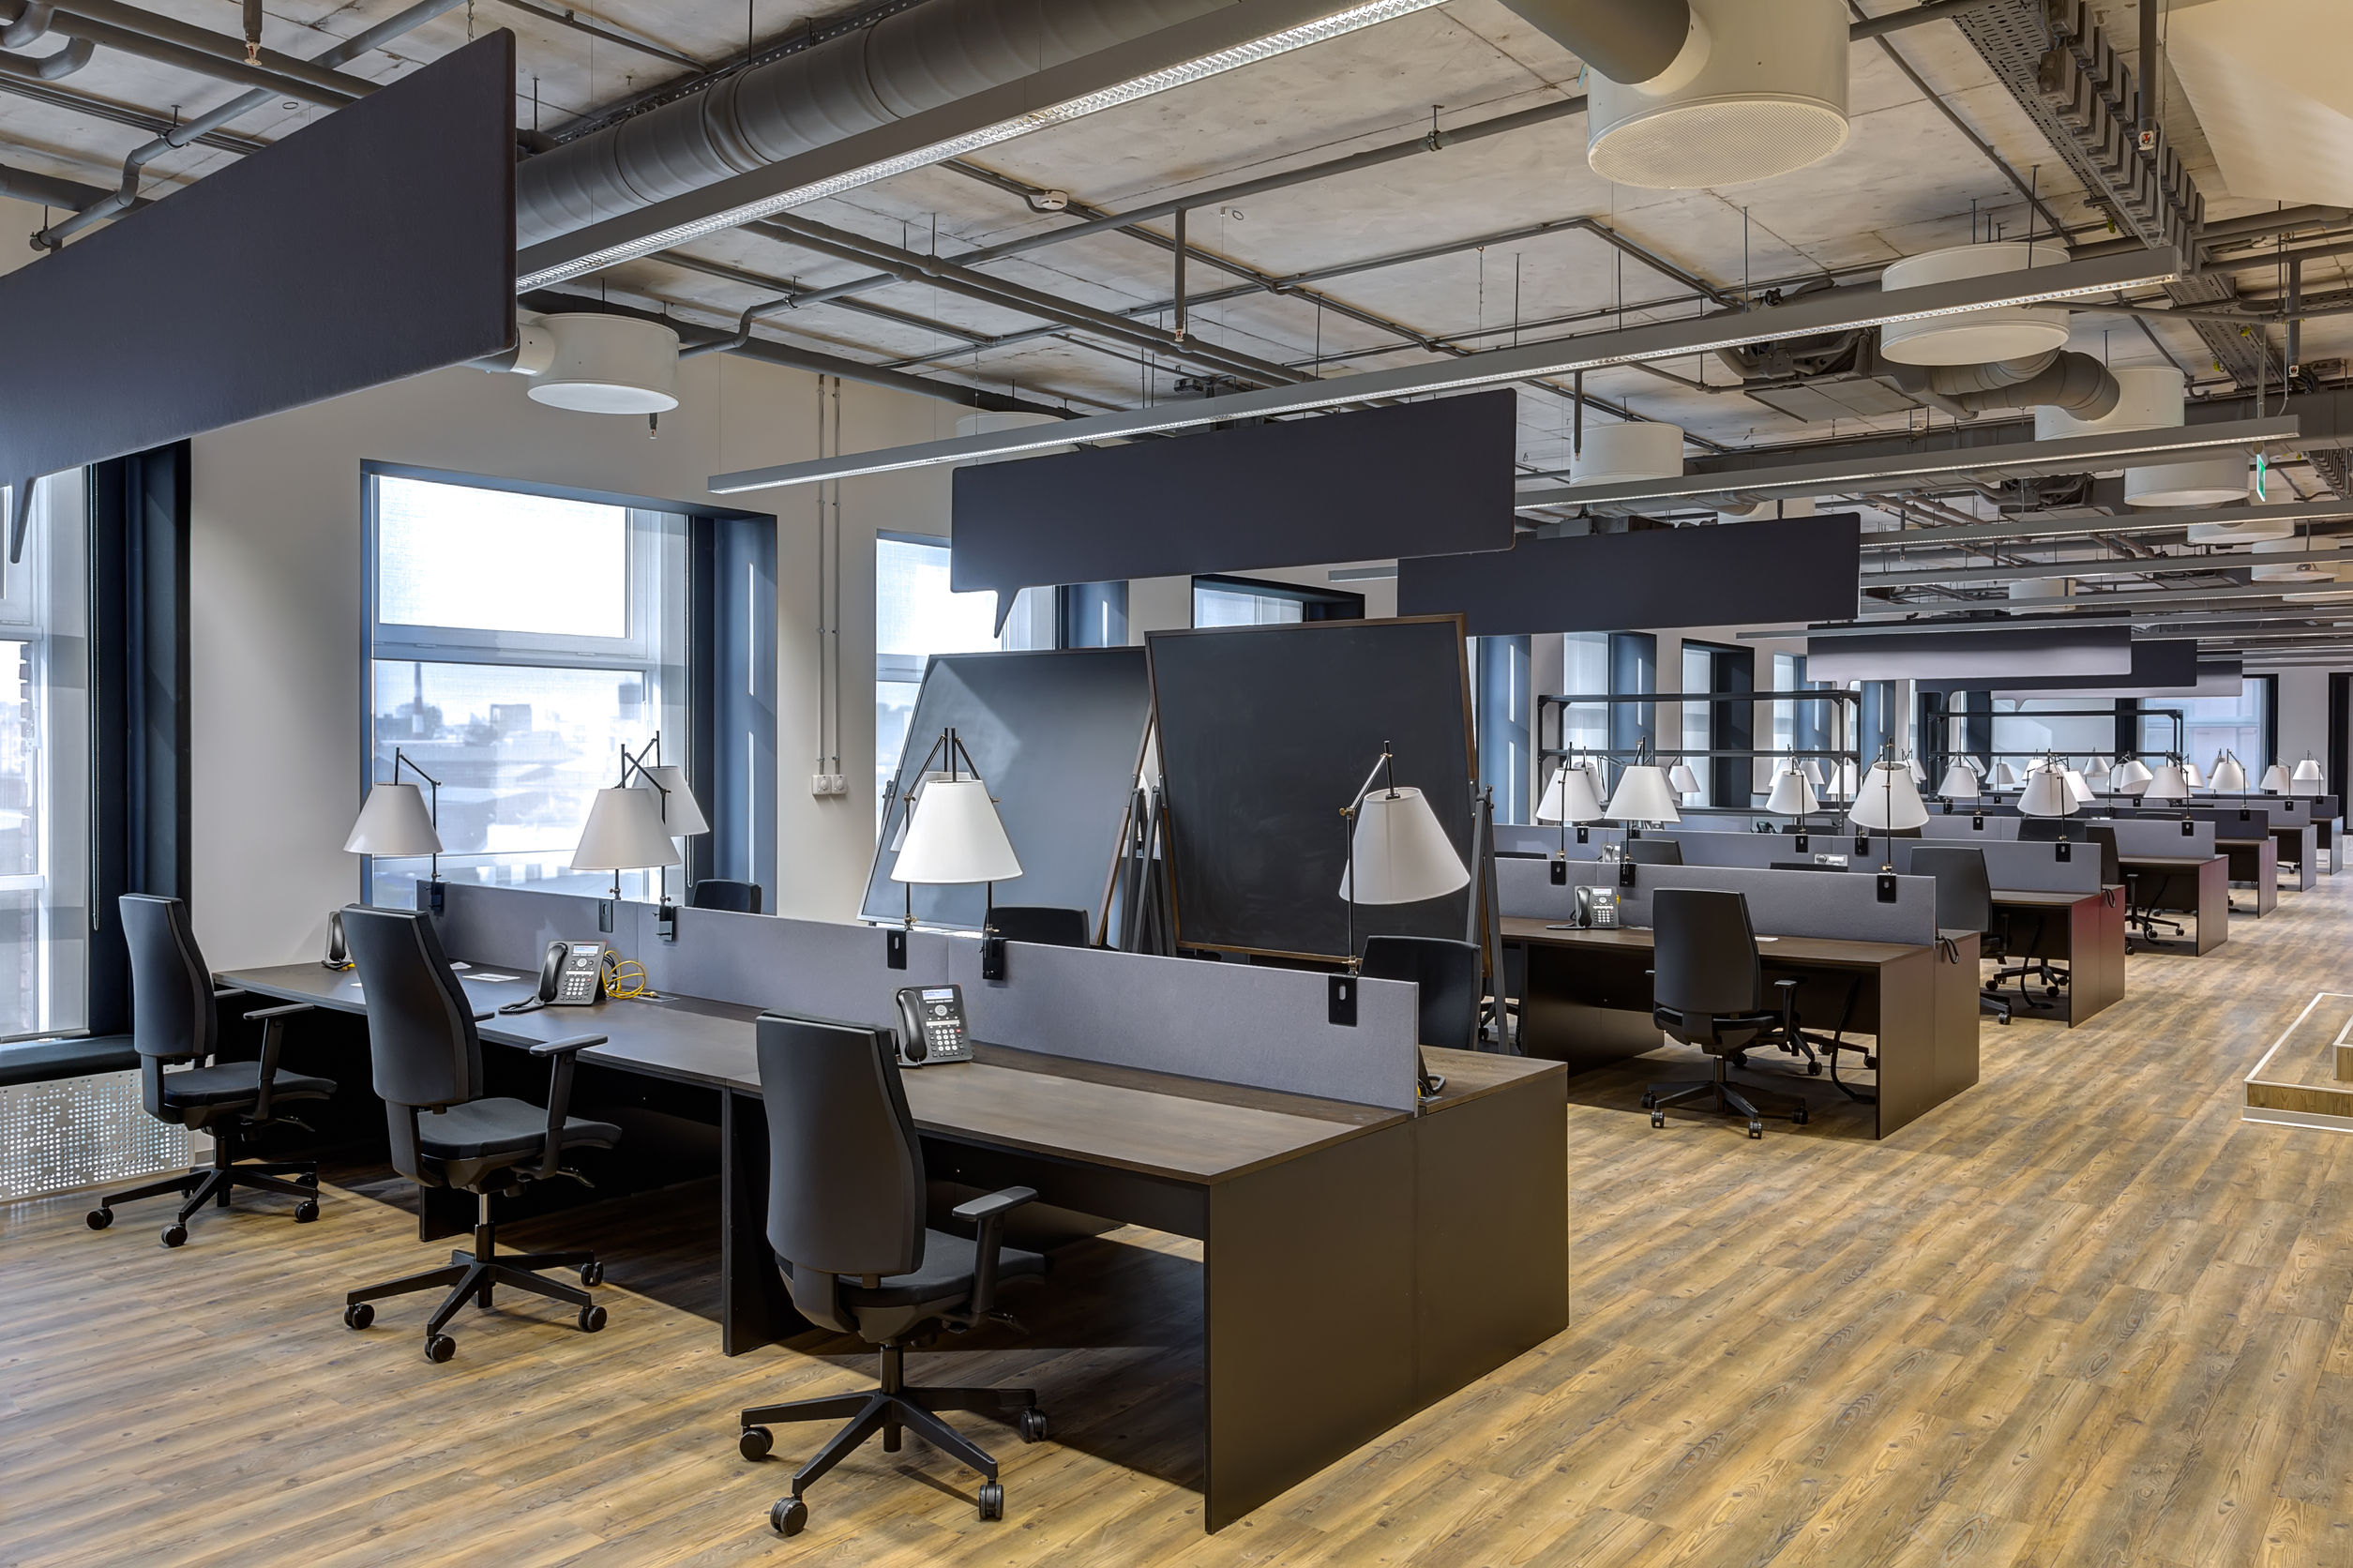 Natural Light & Textile Facades: Making a More Productive Workplace